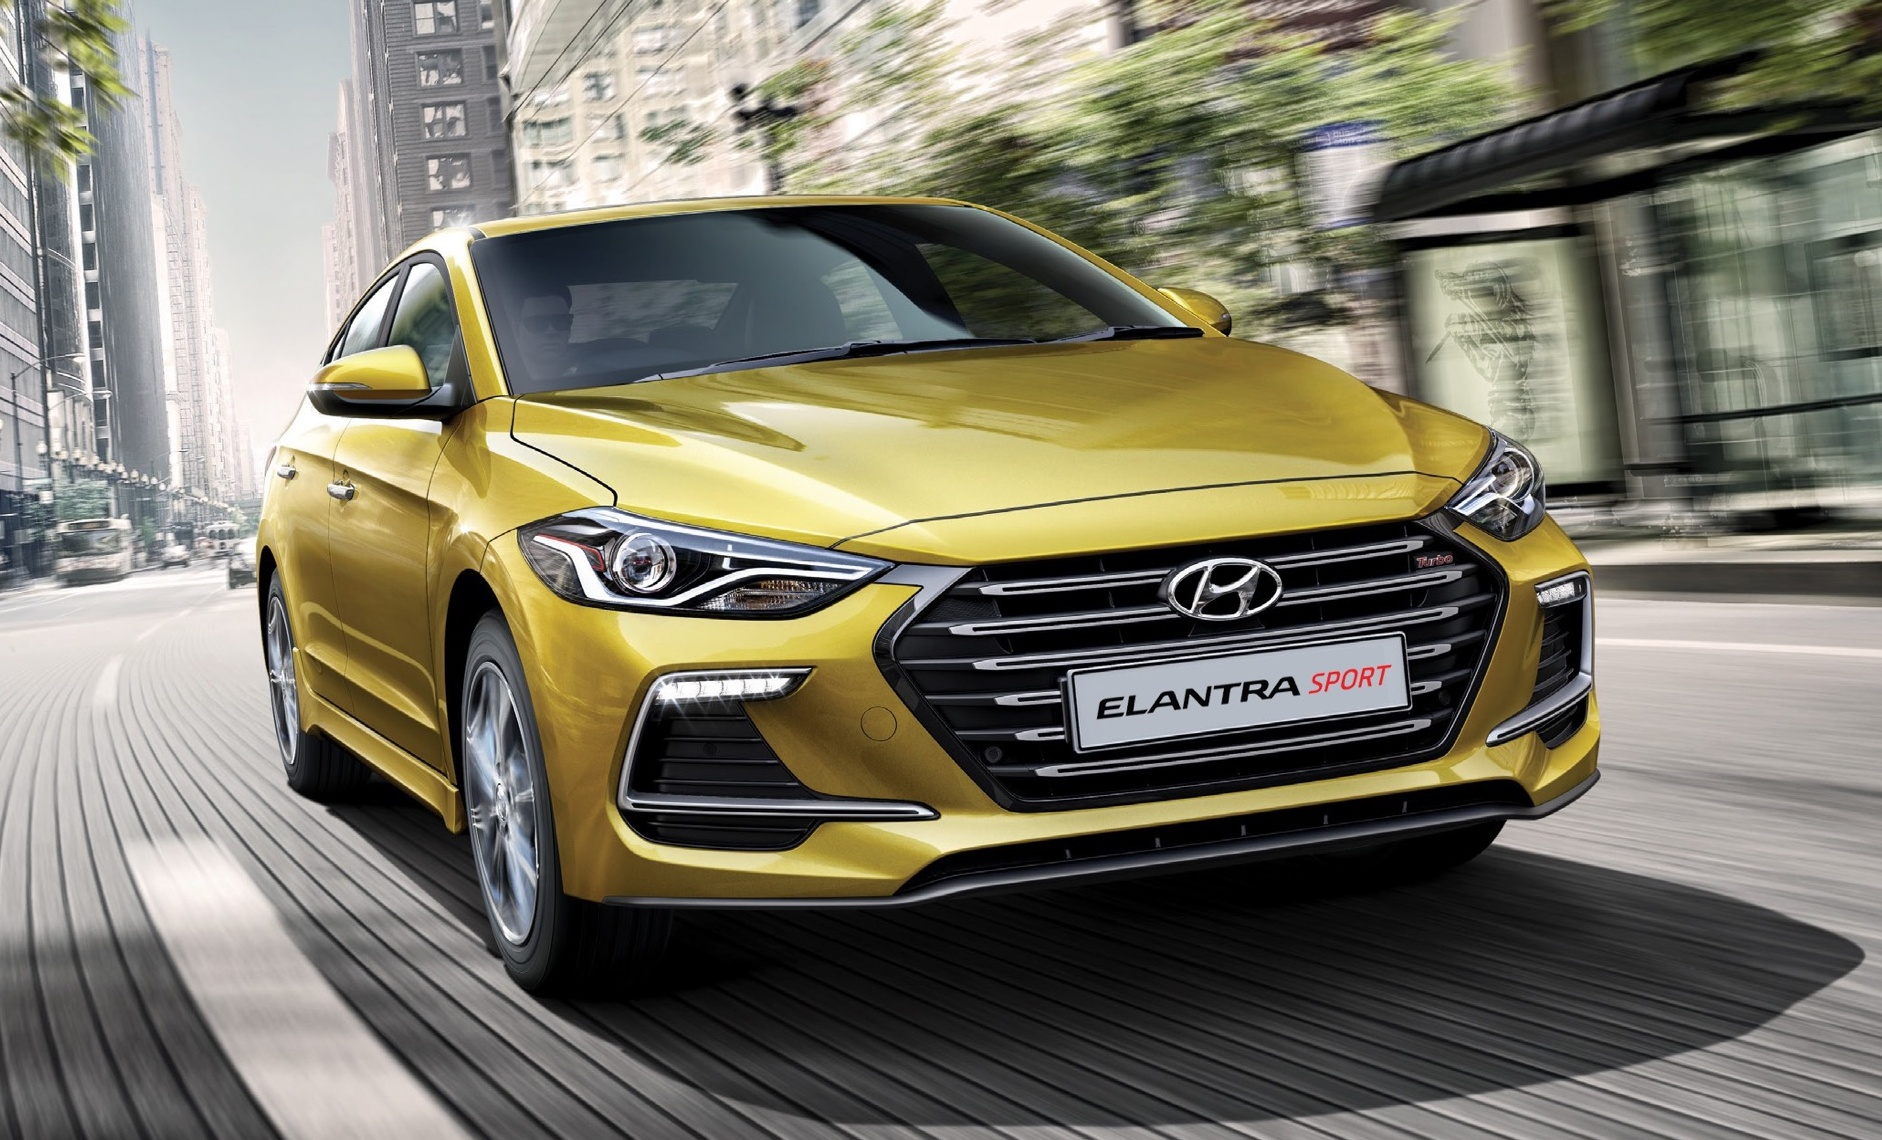 2017 hyundai elantra open for booking in malaysia 2 0 mpi from rm120k 1 6 turbo sport for. Black Bedroom Furniture Sets. Home Design Ideas